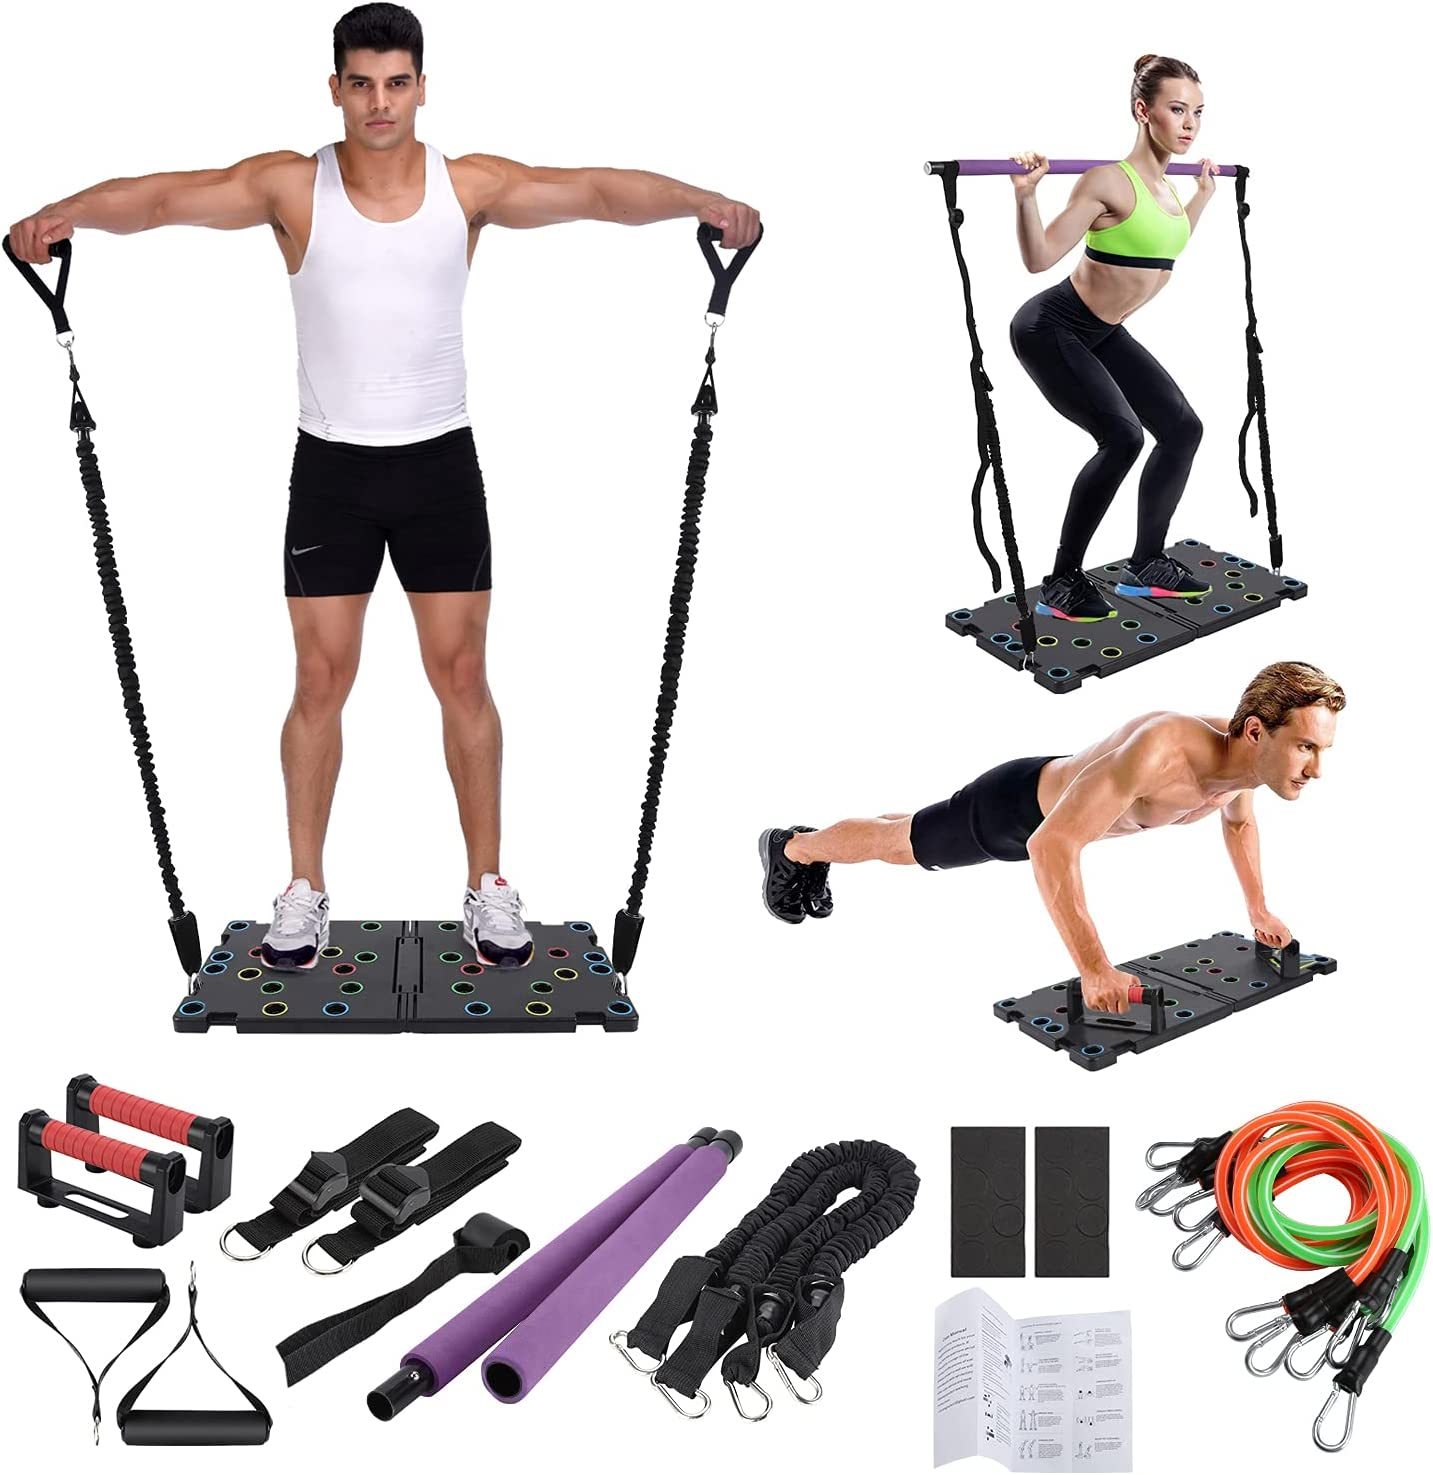 O-Conn Portable Home Gym with Push-up Stand $48 Coupon